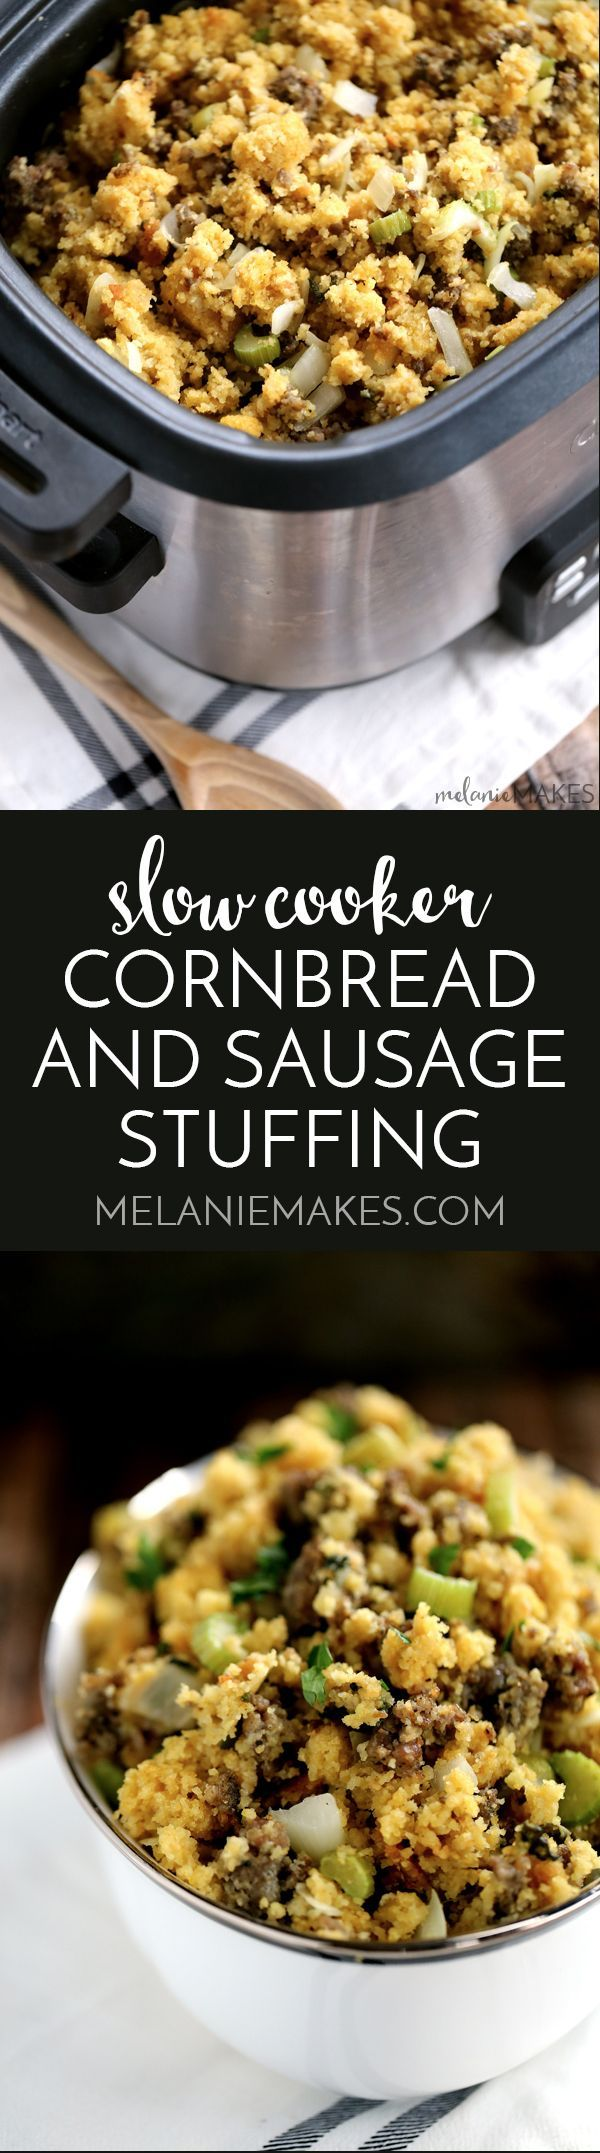 This Slow Cooker Cornbread and Sausage Stuffing knocks the socks off anything you'd buy from a box at the grocery store, yet is just as easy to prepare.  Cornbread, sausage, celery, onion and sage are stirred together are the stars of this Thanksgiving staple that's cooked in your slow cooker to free up valuable oven real estate.